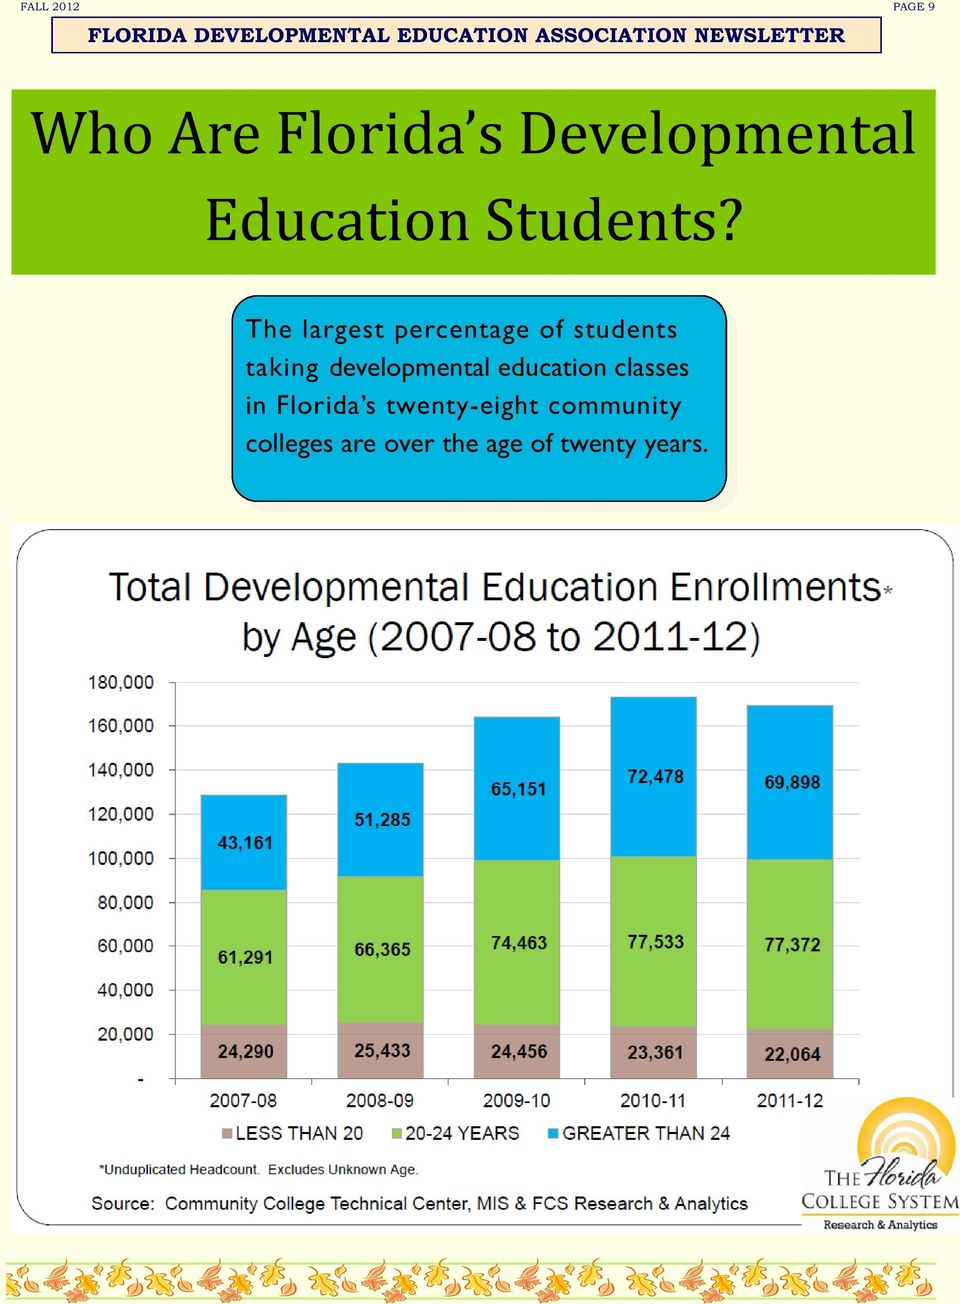 The largest percentage of students taking developmental education